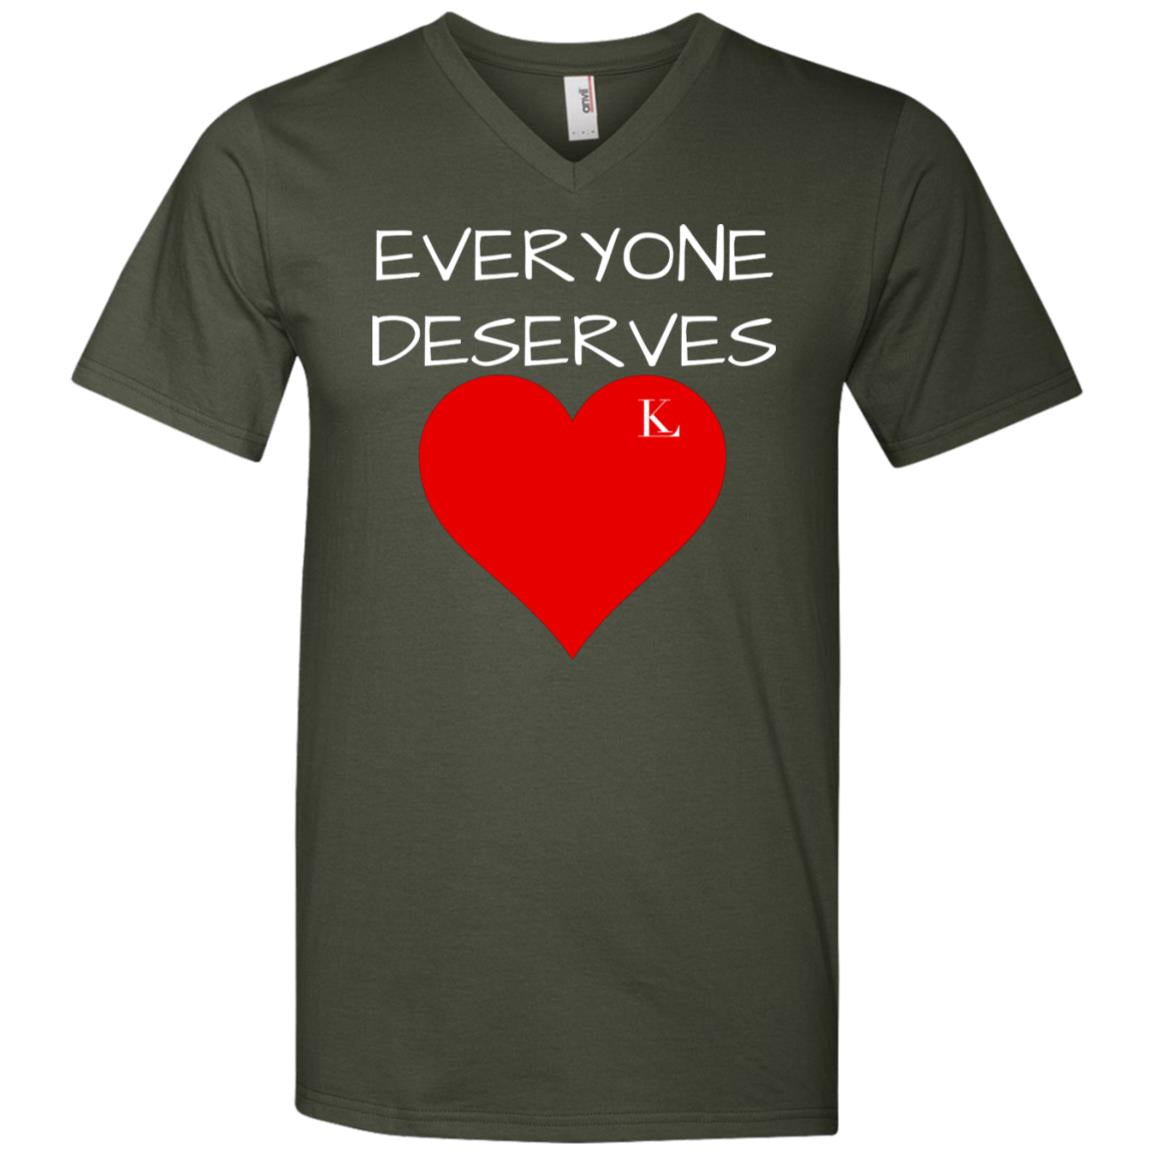 Everyone Deserves Love Men's V-Neck T-Shirt